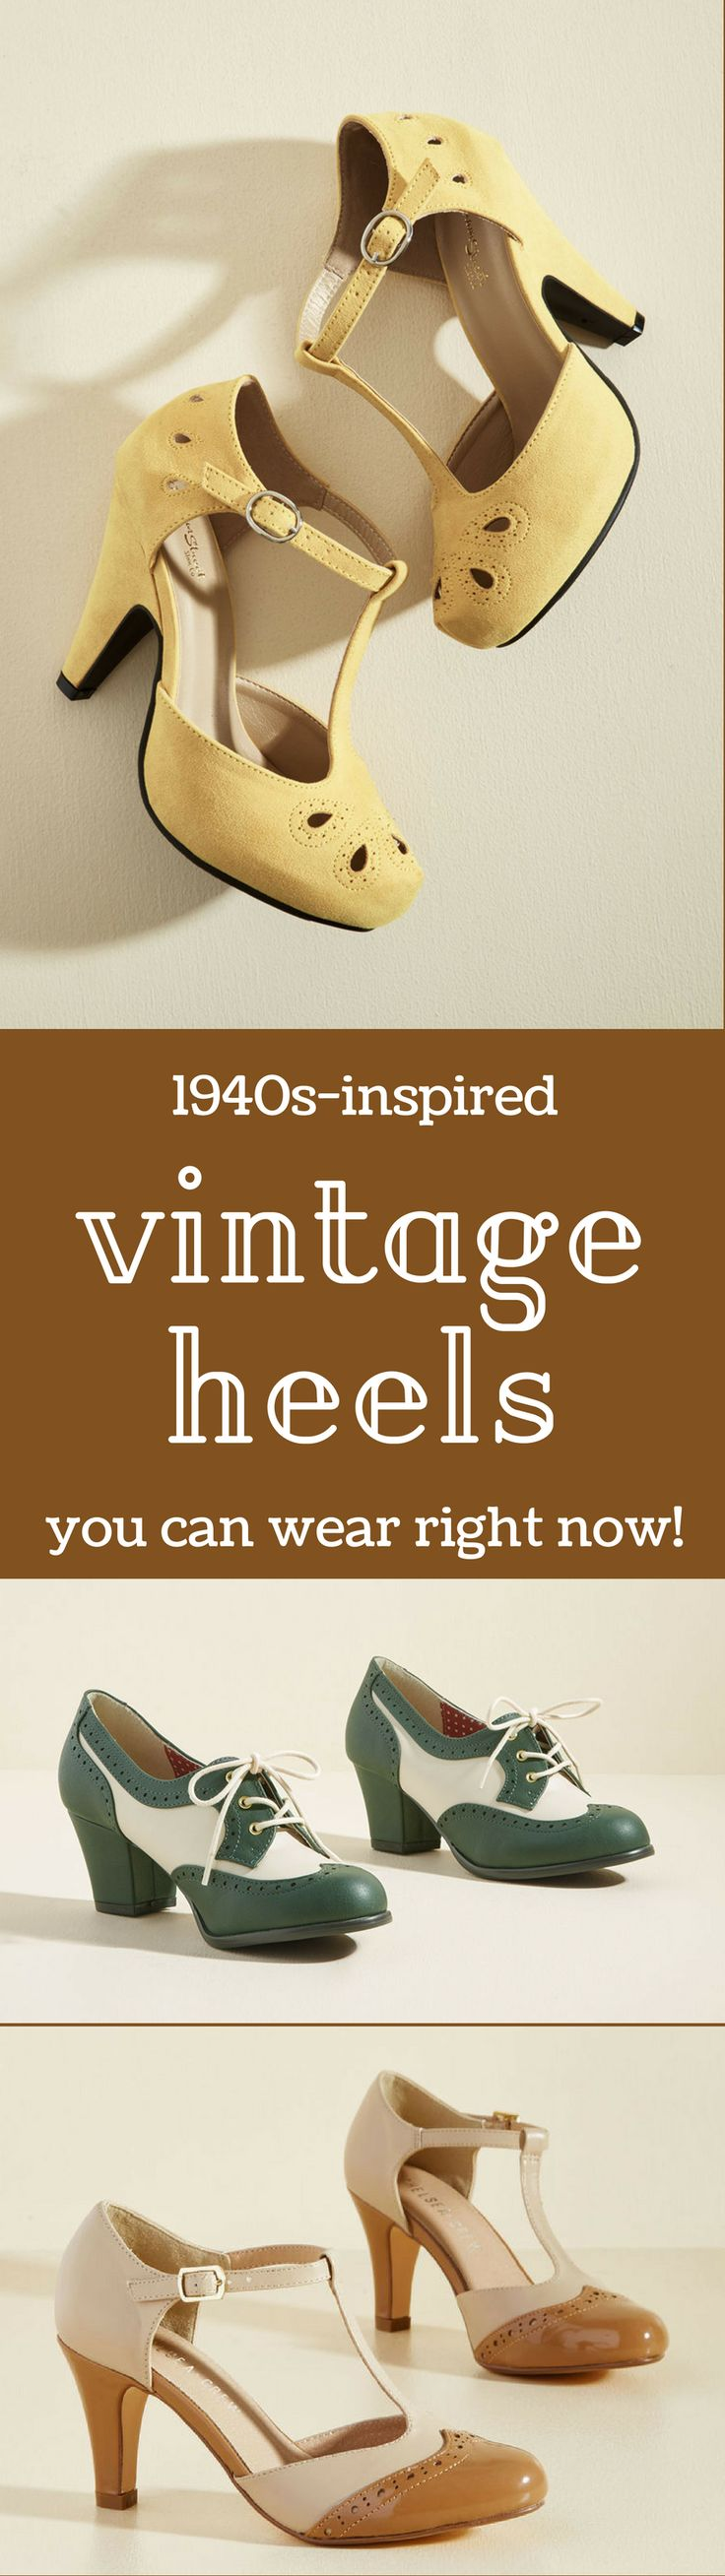 Classic 1940s inspired vintage heels you can wear right now! Oxford styles with pinhole details, cute cutout t-strap heels in bright colors, and of course with wing tips. Perfect dancing shoes for a night of swing dancing or to complete a costume. #19